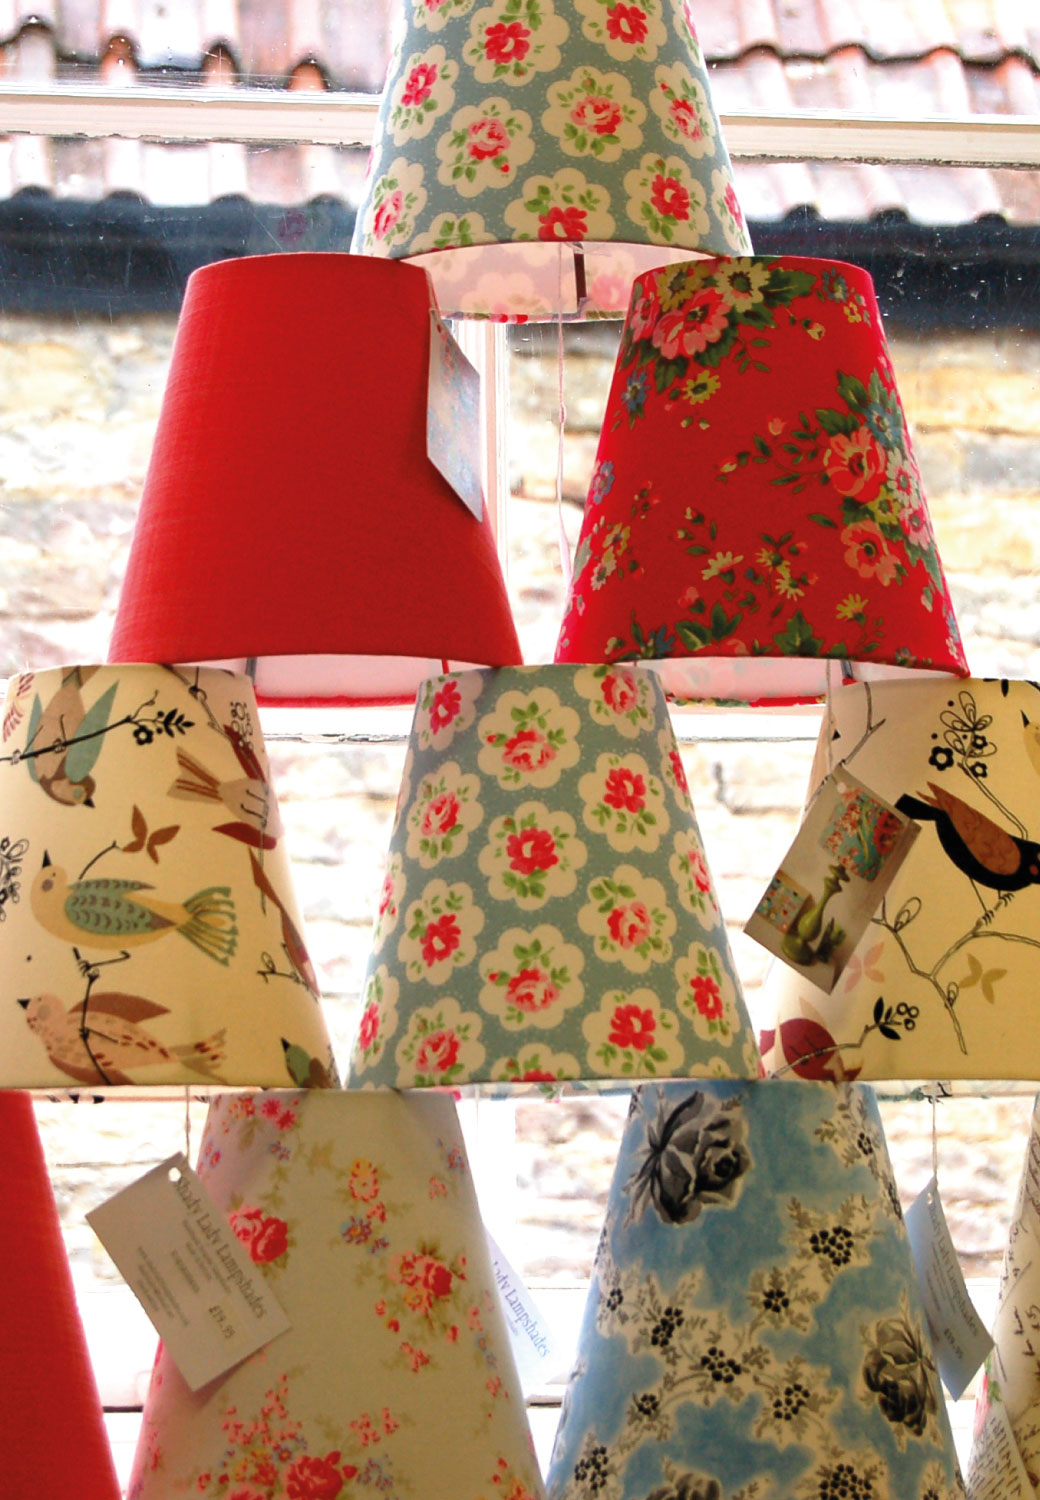 Bespoke lampshades uk custom made bespoke retro lampshades candle clip aloadofball Gallery